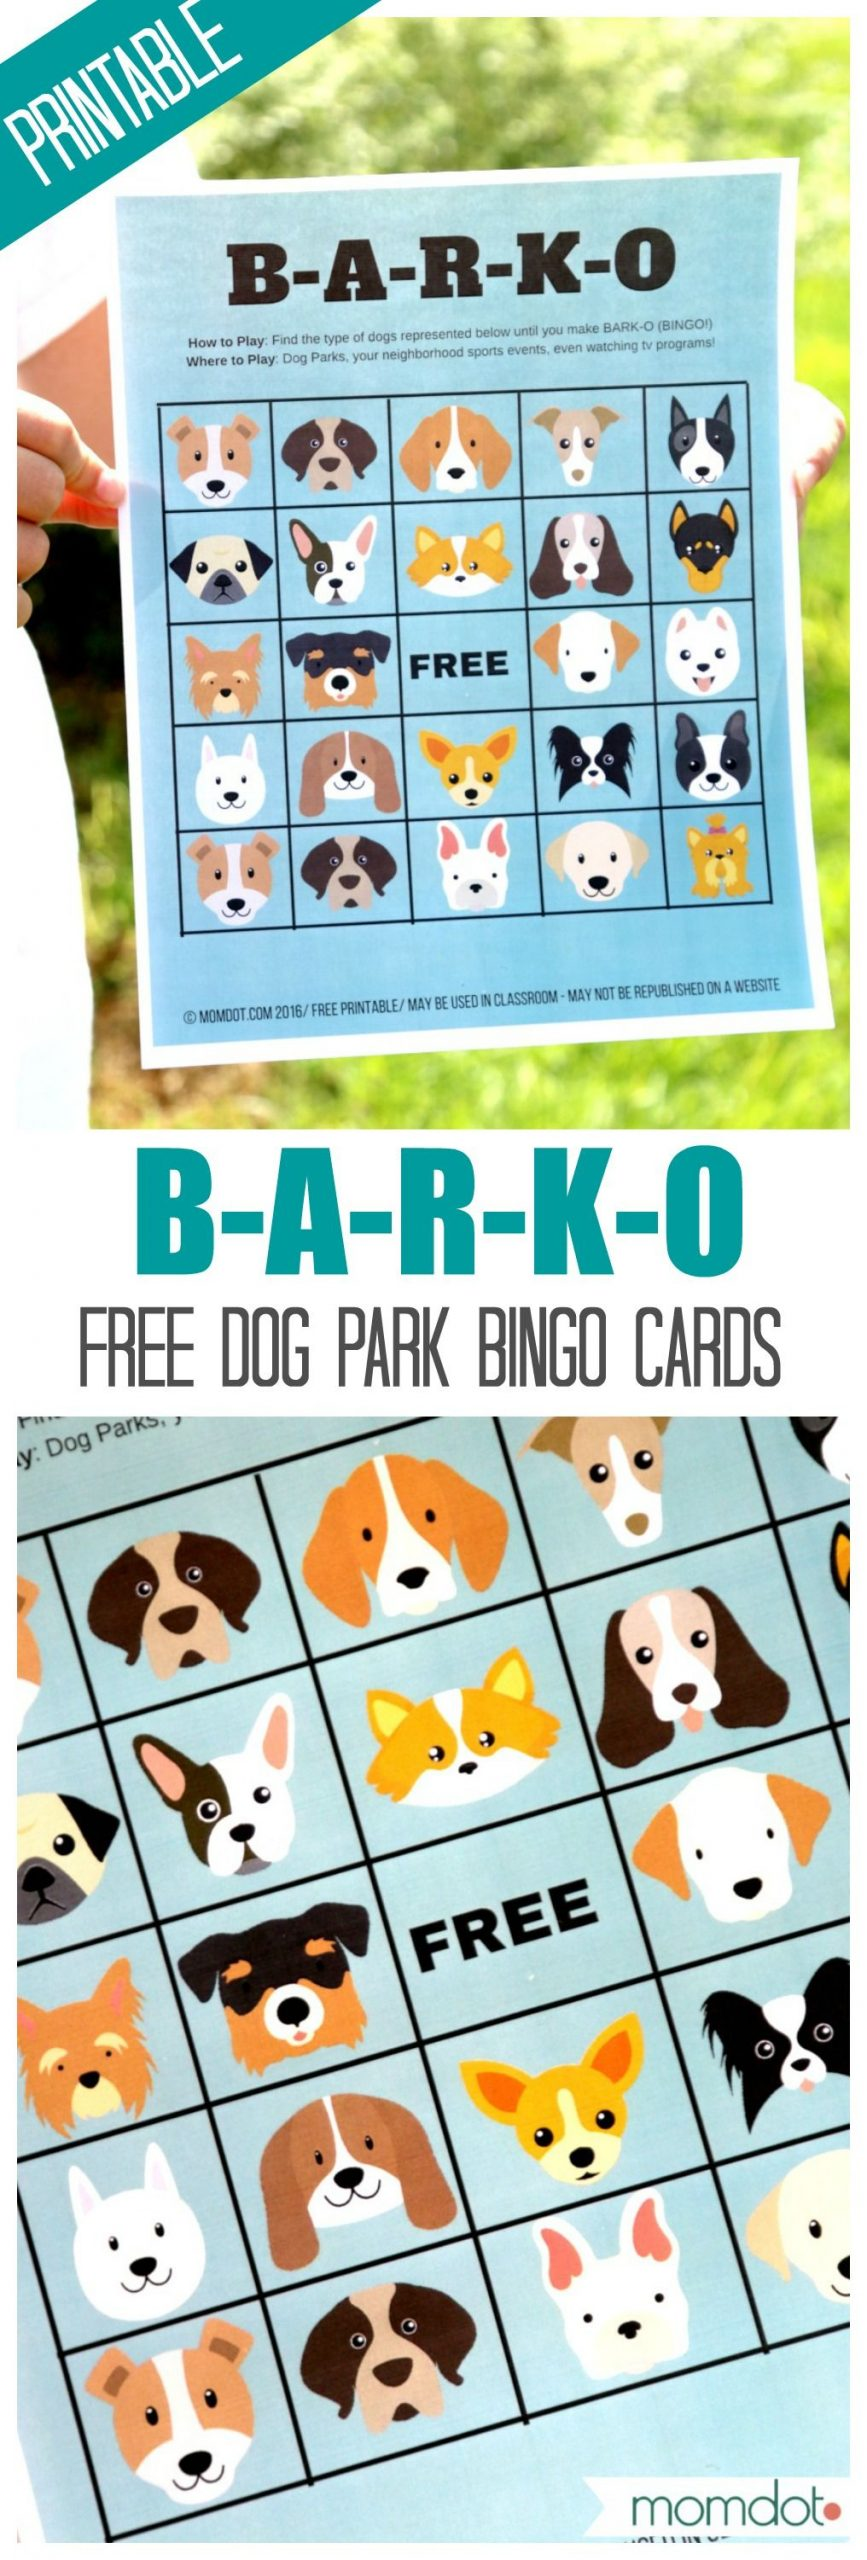 How To Start A Dog Park   Birthday Party Games For Kids, Dog